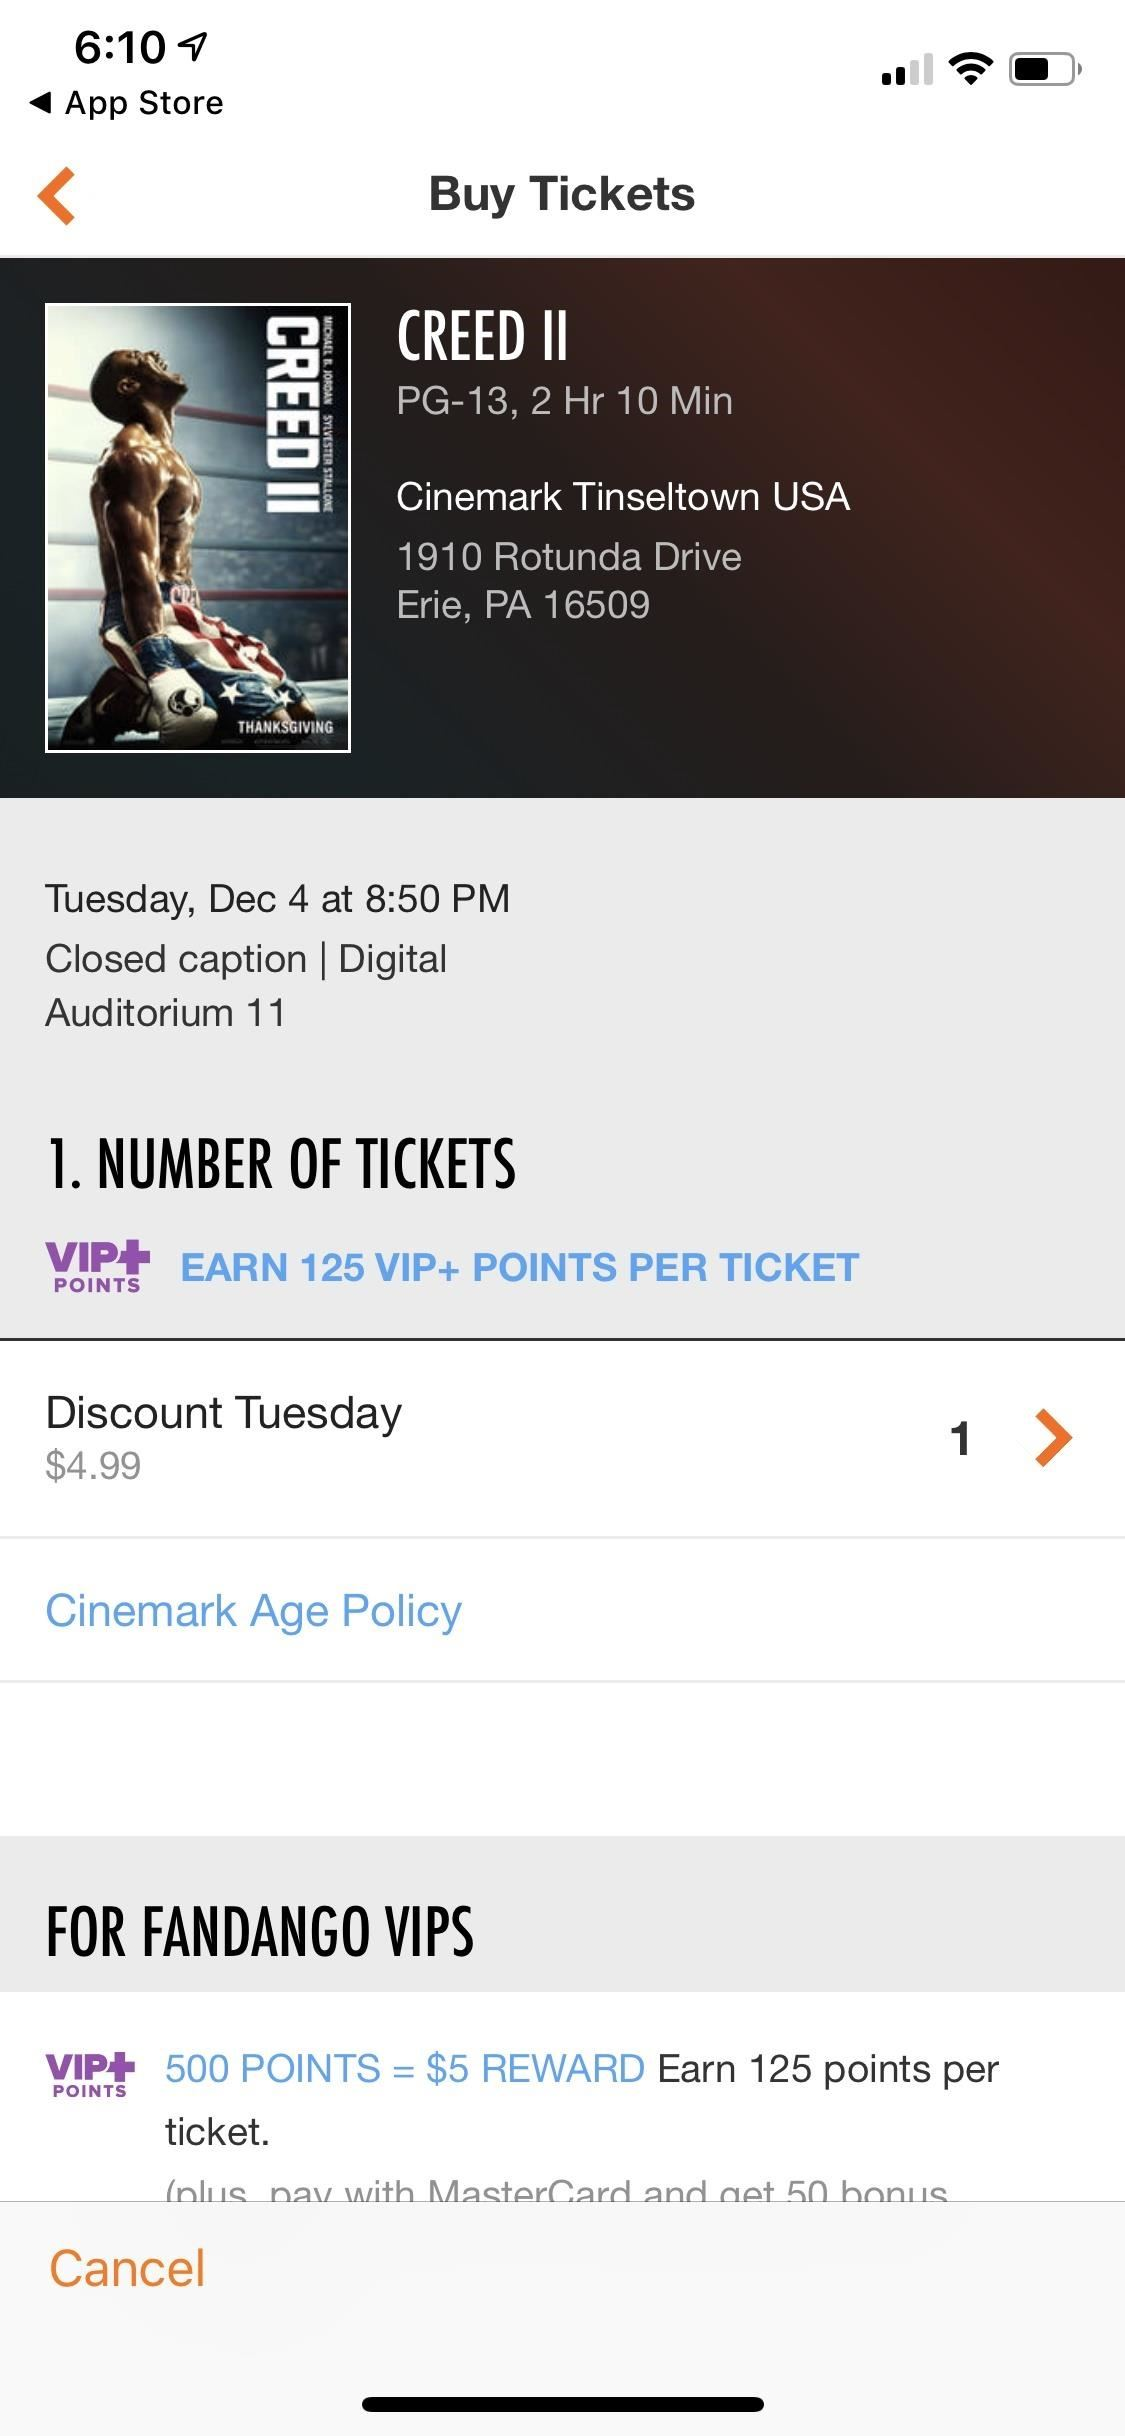 Sinemia Is — Hands Down — A Better & More Reliable Movie Ticket Subscription Than MoviePass